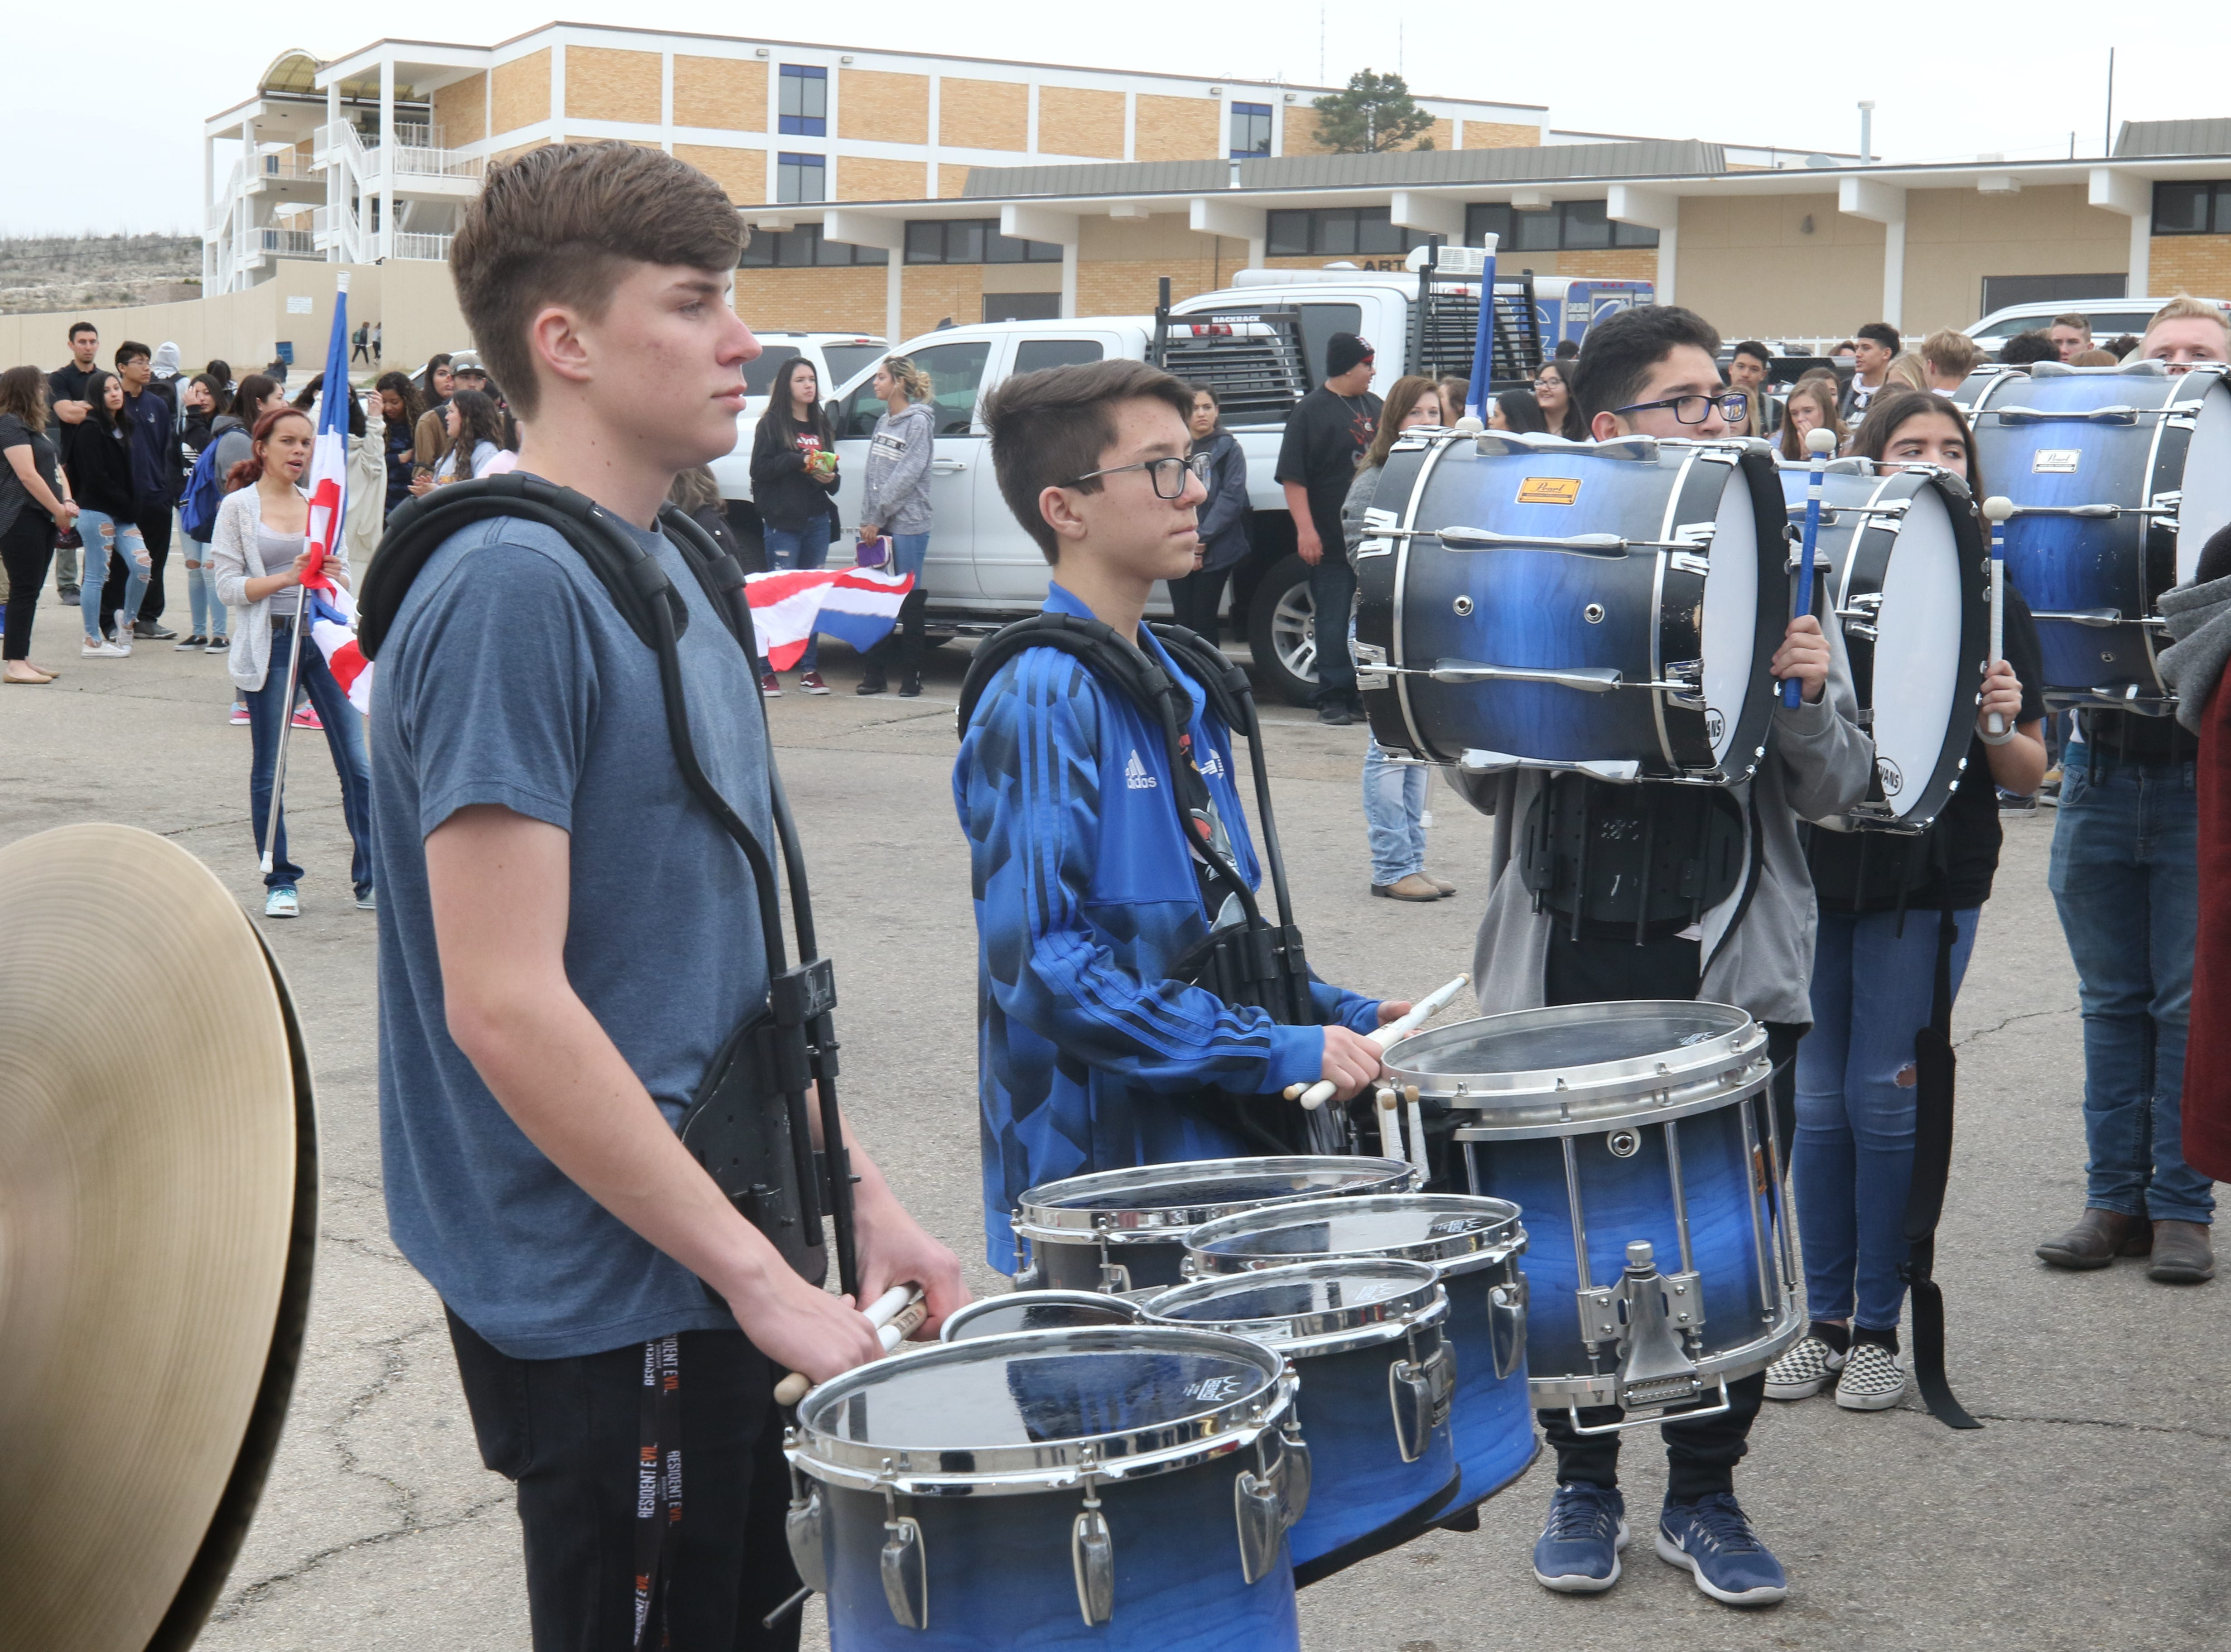 Members of the Carlsbad High School band perform during a ceremony to accept an equipment donation from XTO Energy, March 11, 2019 at Carlsbad High School.